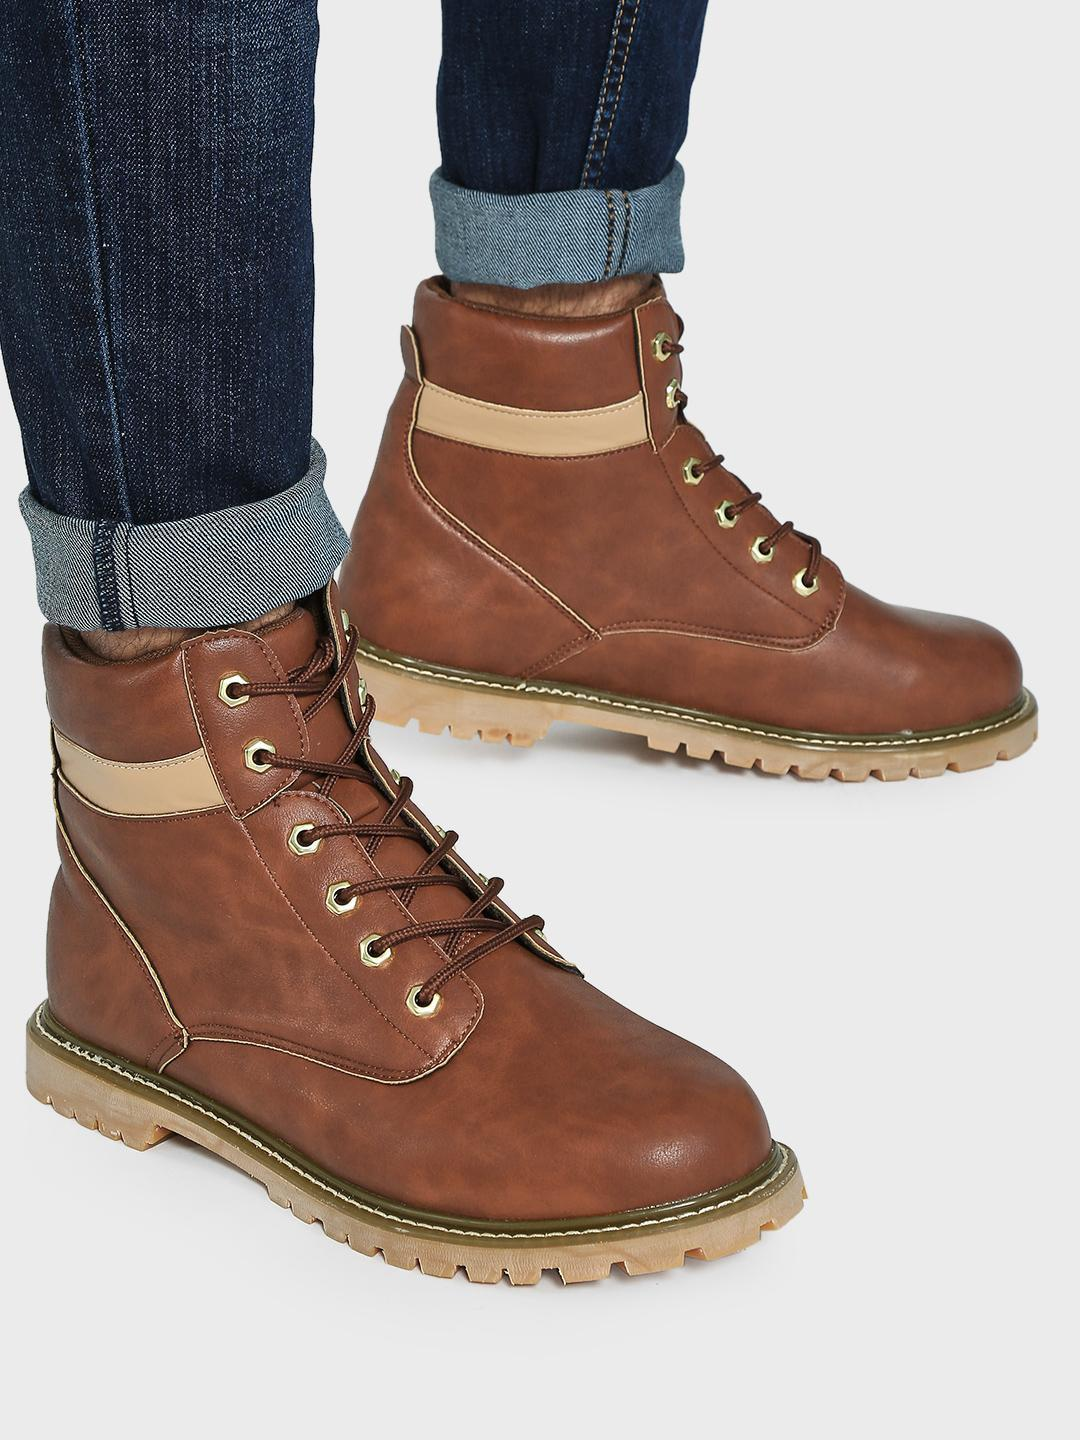 KOOVS Brown Cleated Sole Lace-Up Boots 1